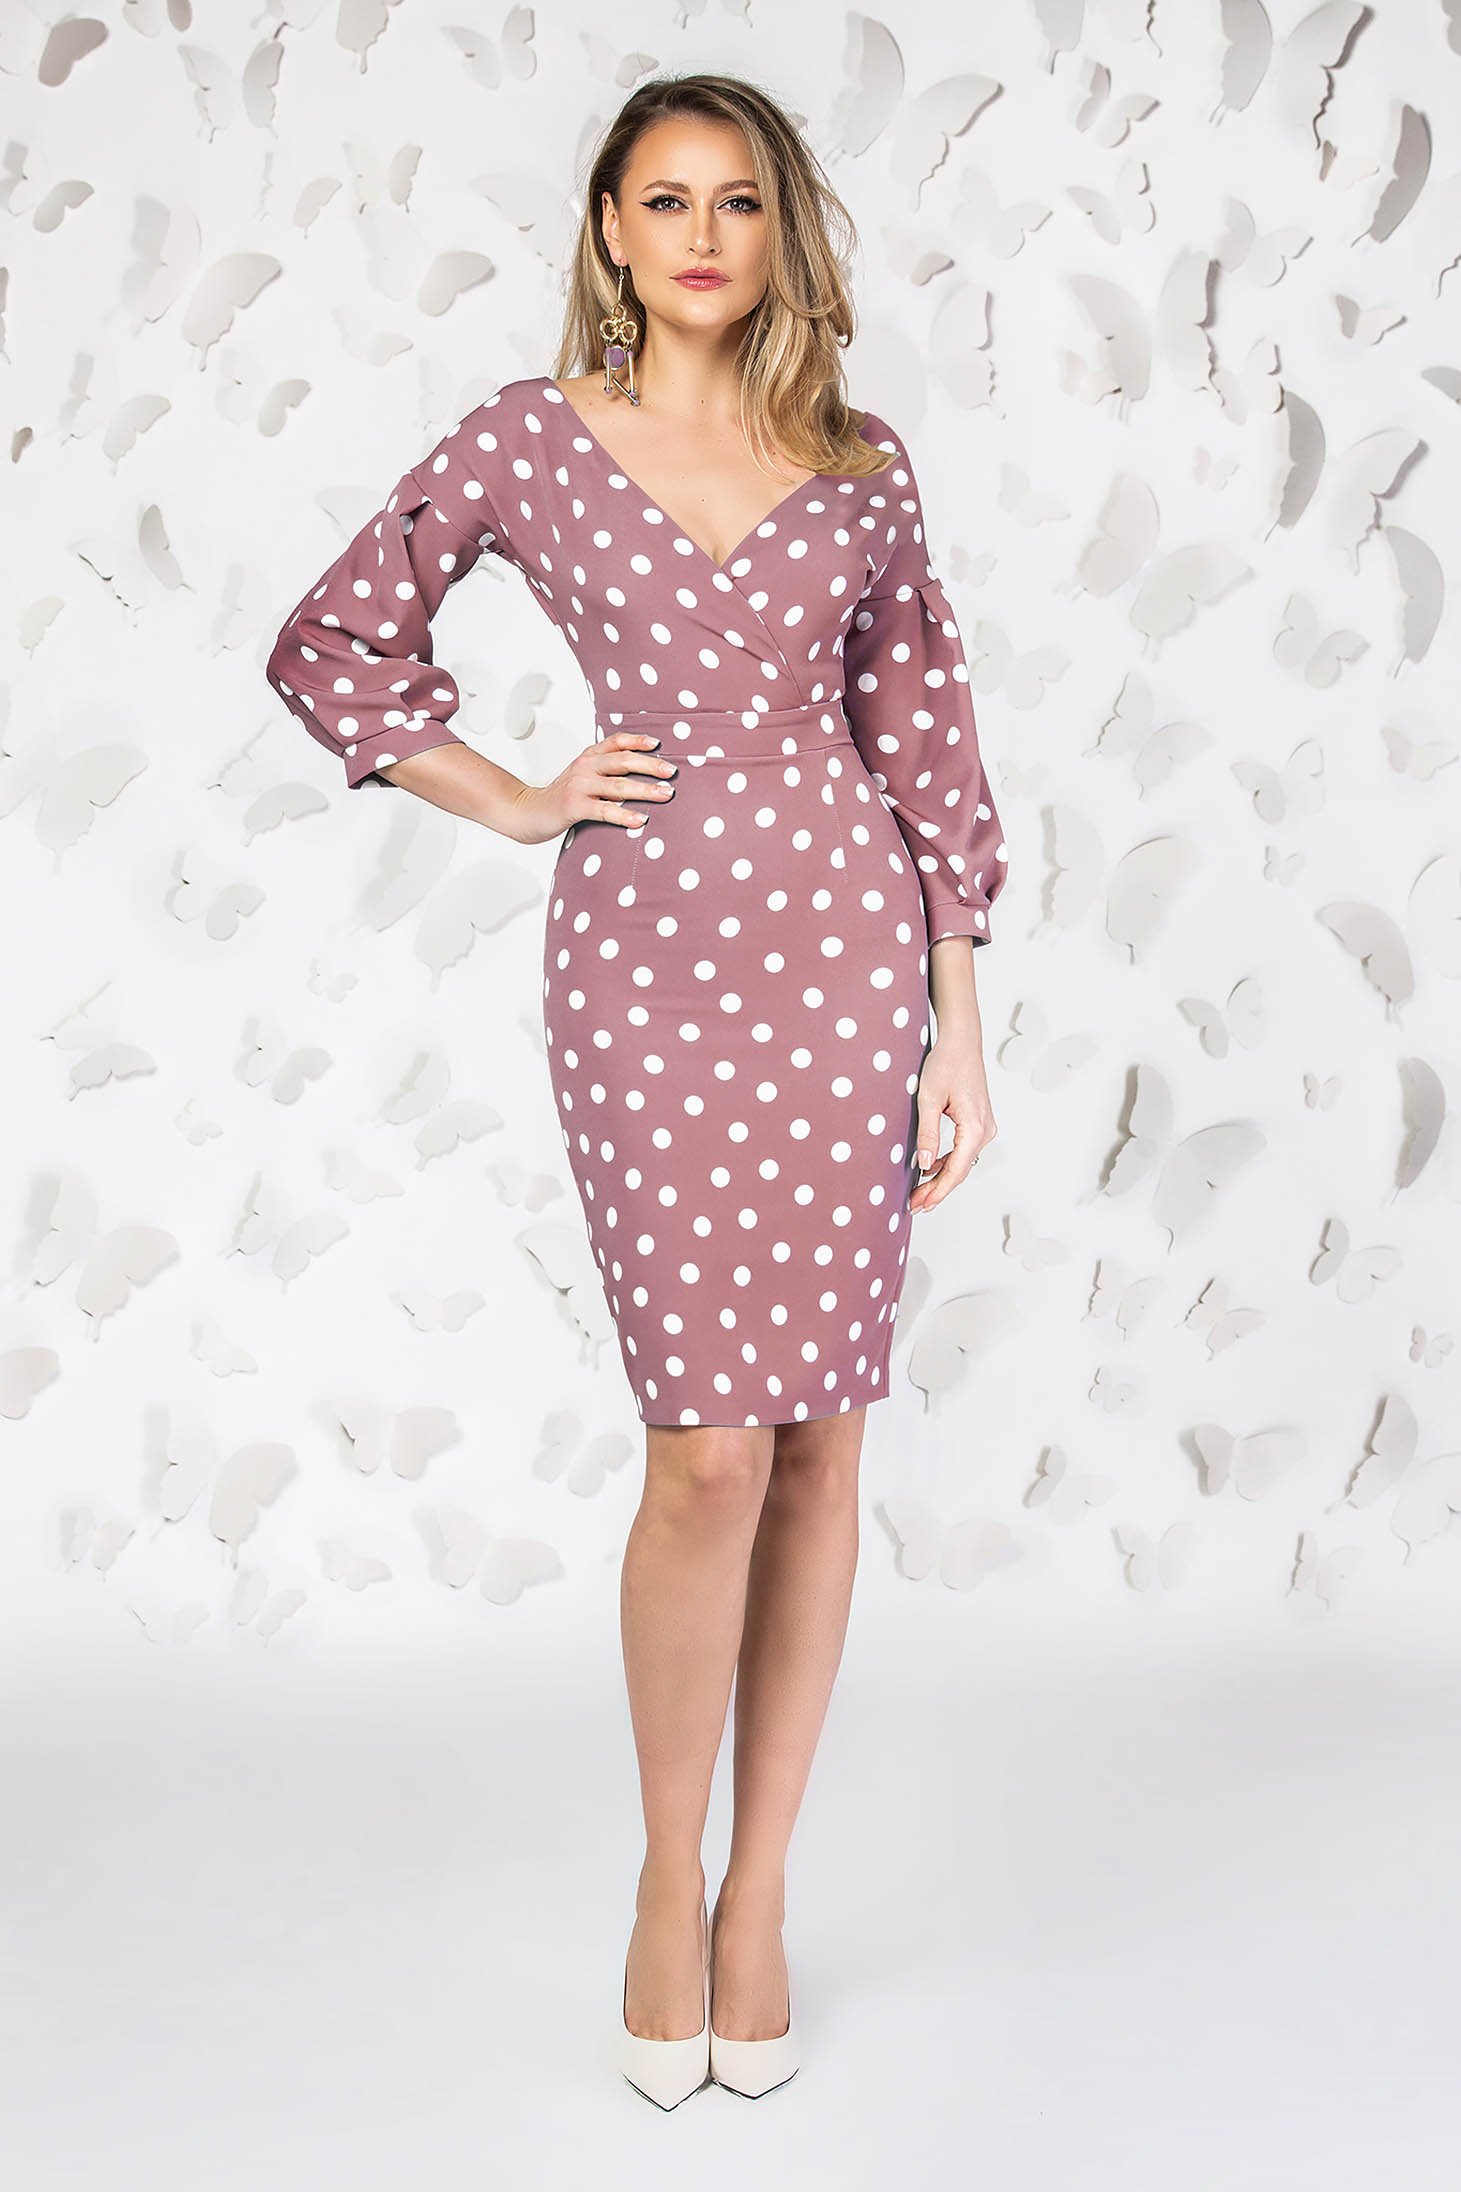 Pink dress office pencil with deep cleavage with puffed sleeves dots print